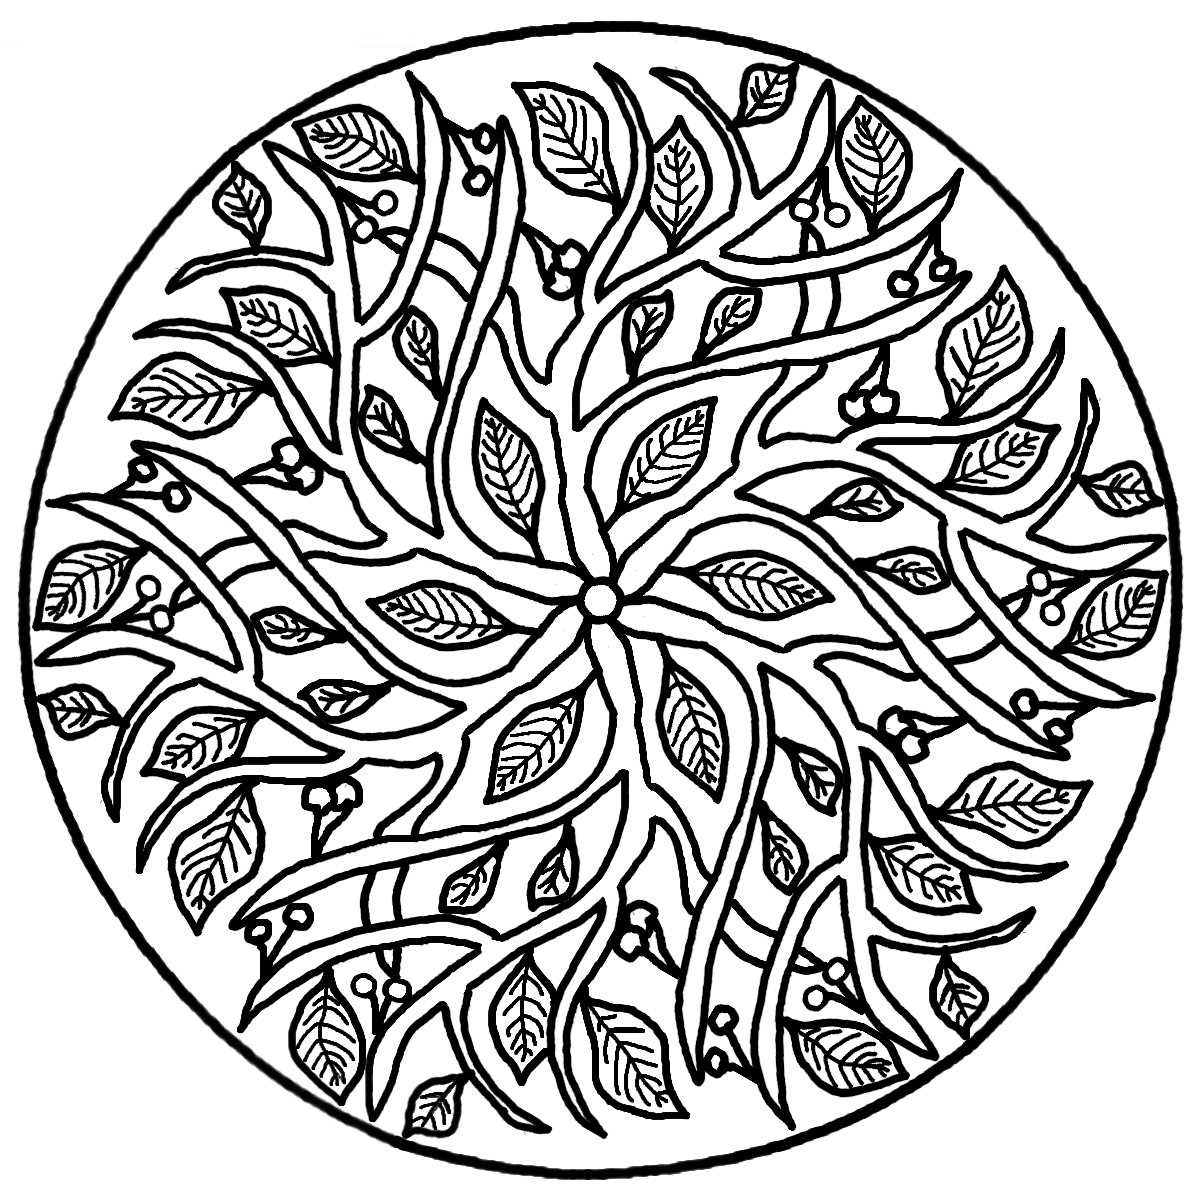 Colouring in pages mandala - Download Mandala Coloring Pages 9